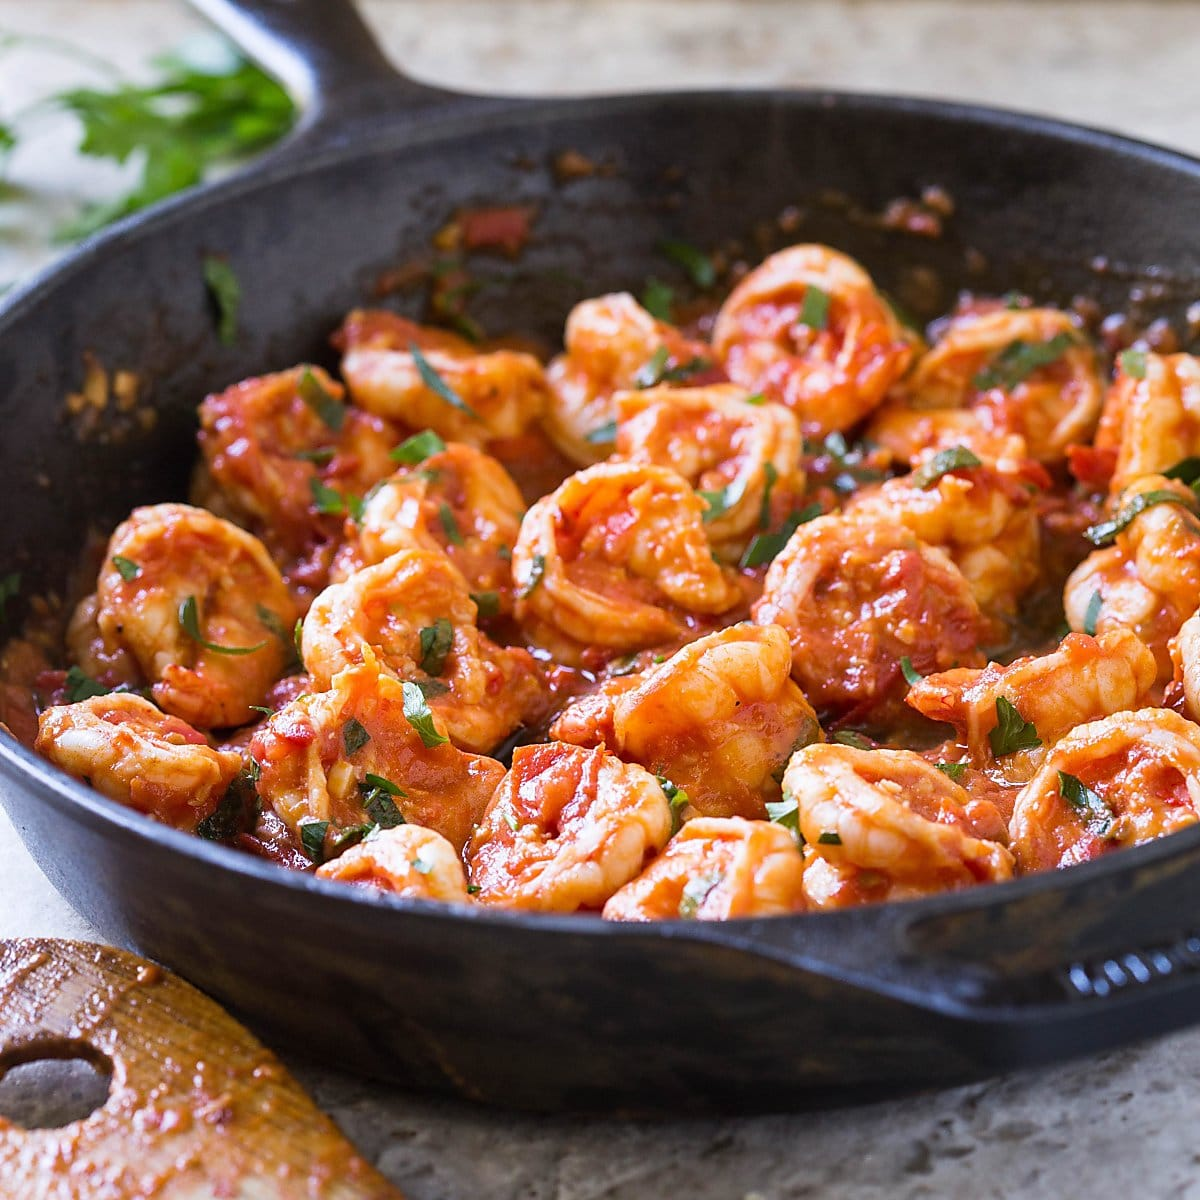 15 Minute Easy Garlic Shrimp In Tomato Sauce Video